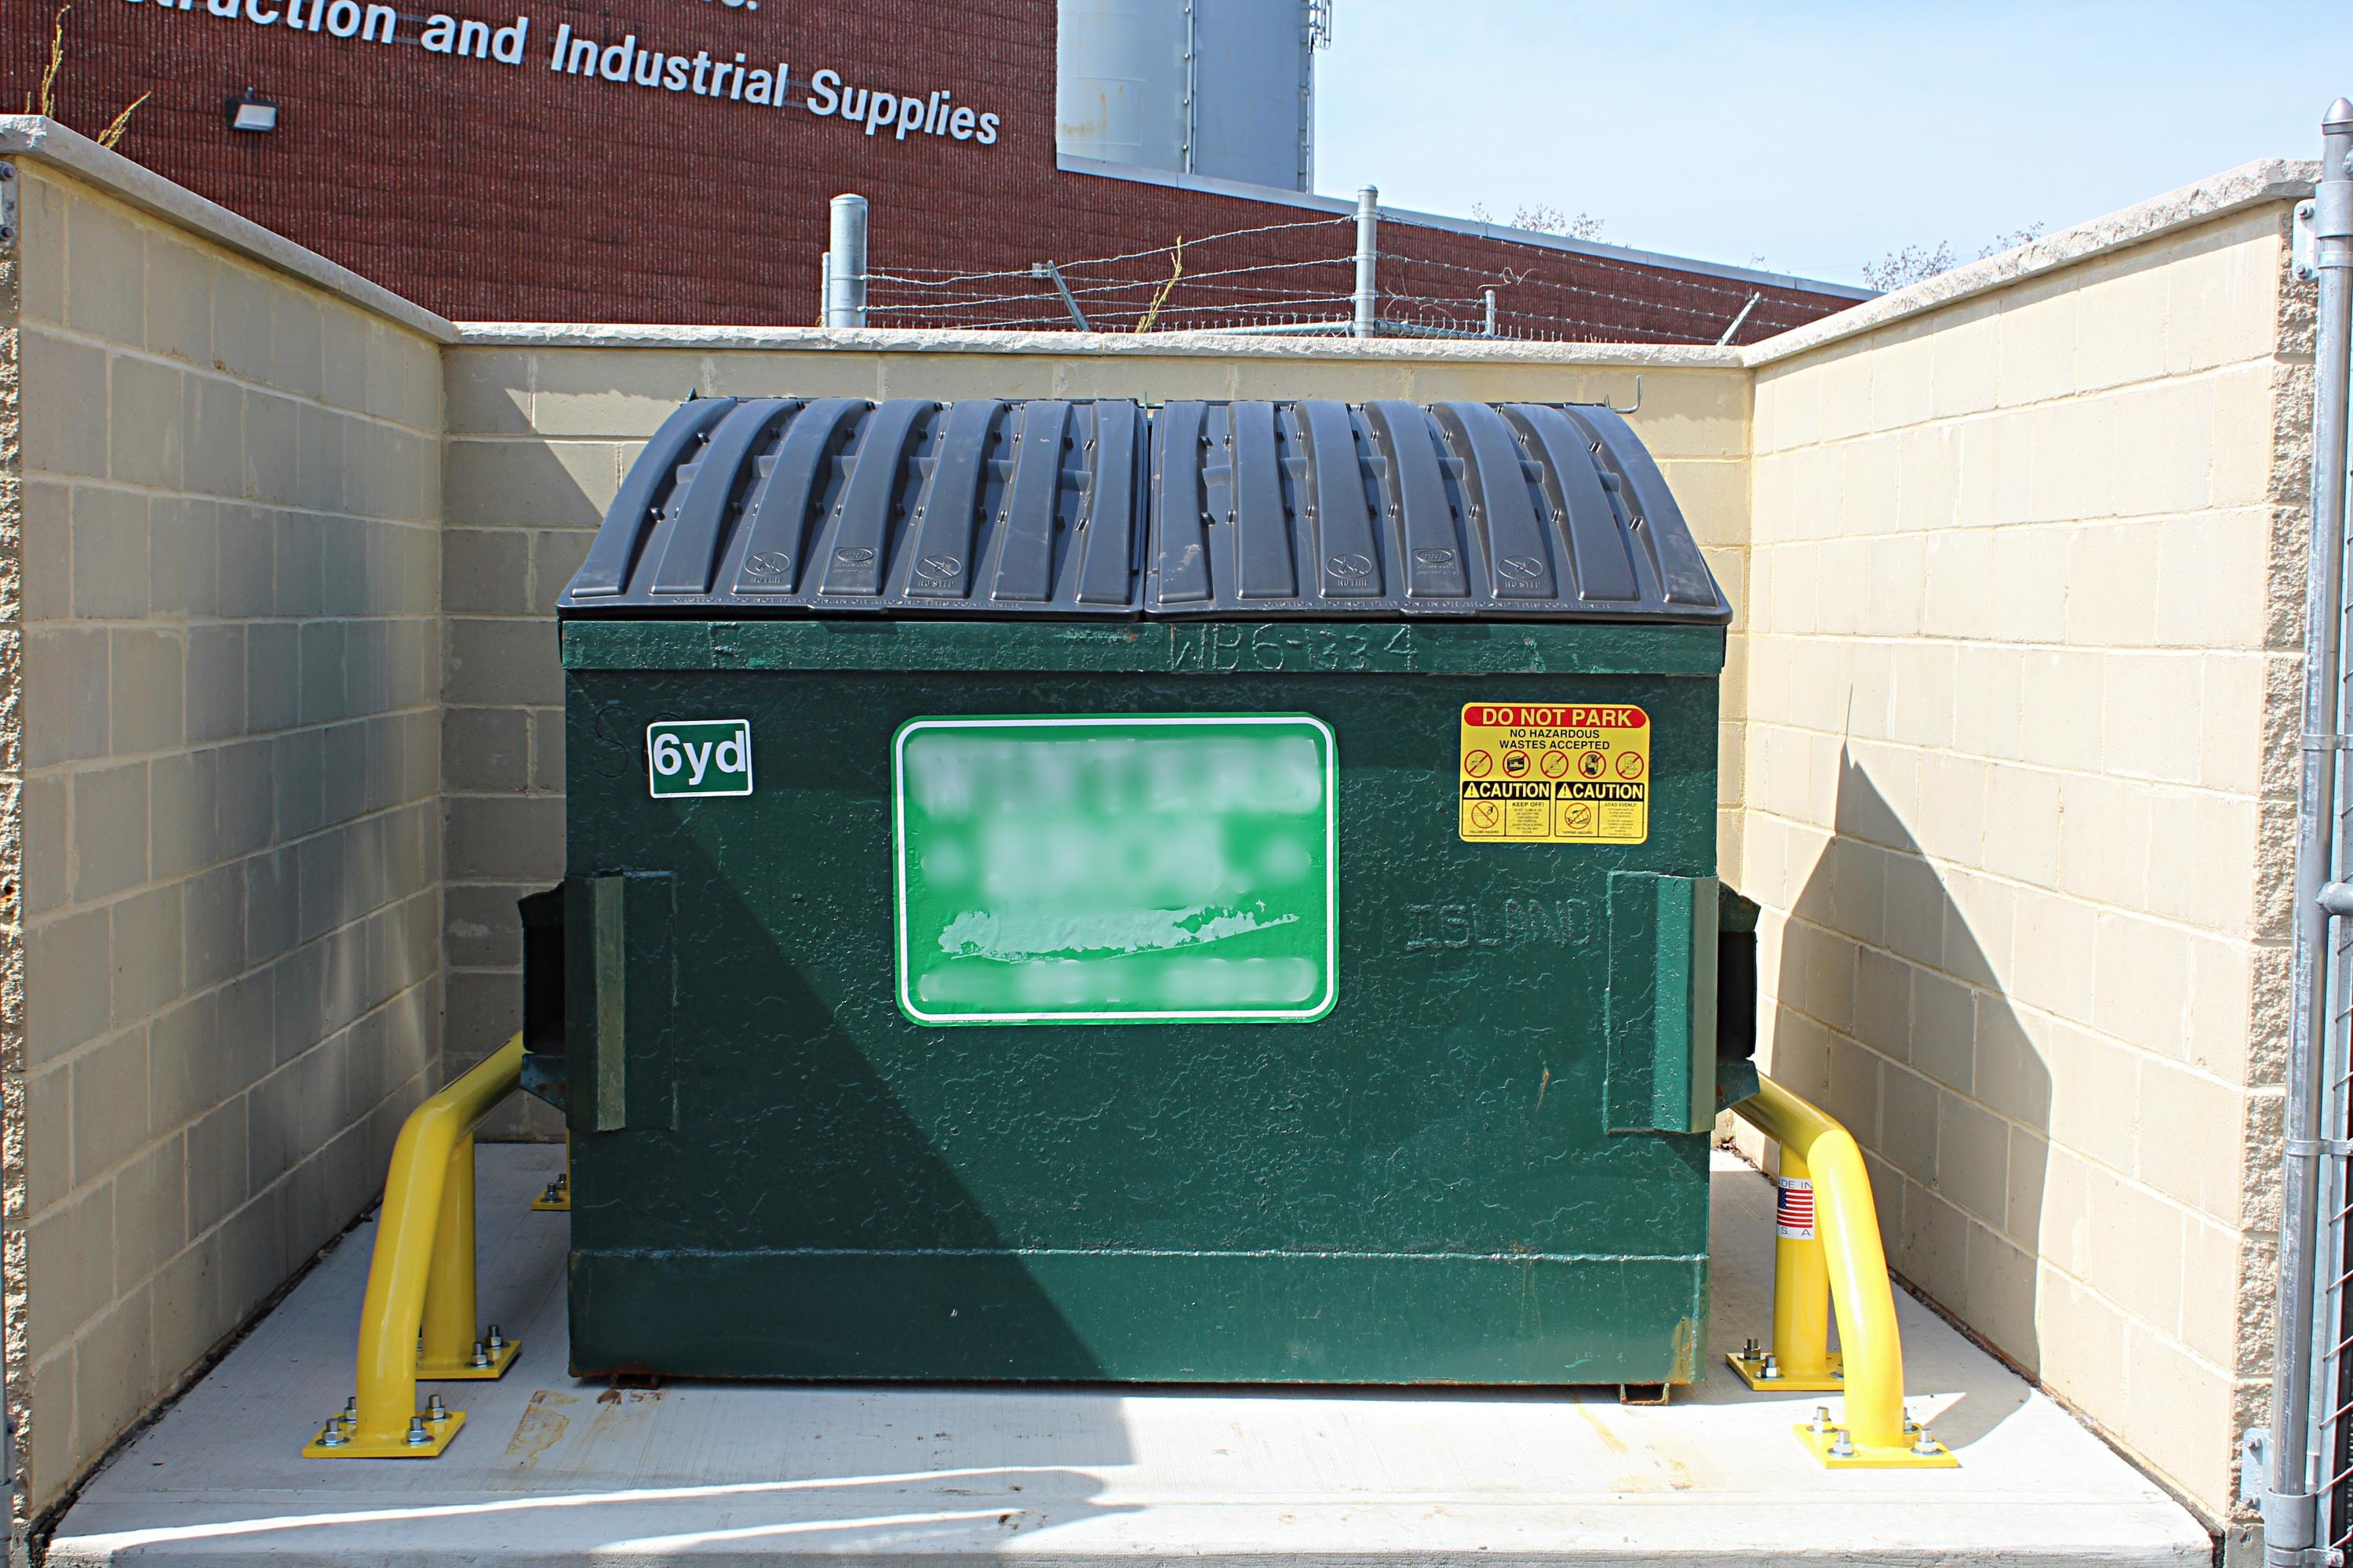 Dumpster Containment Units